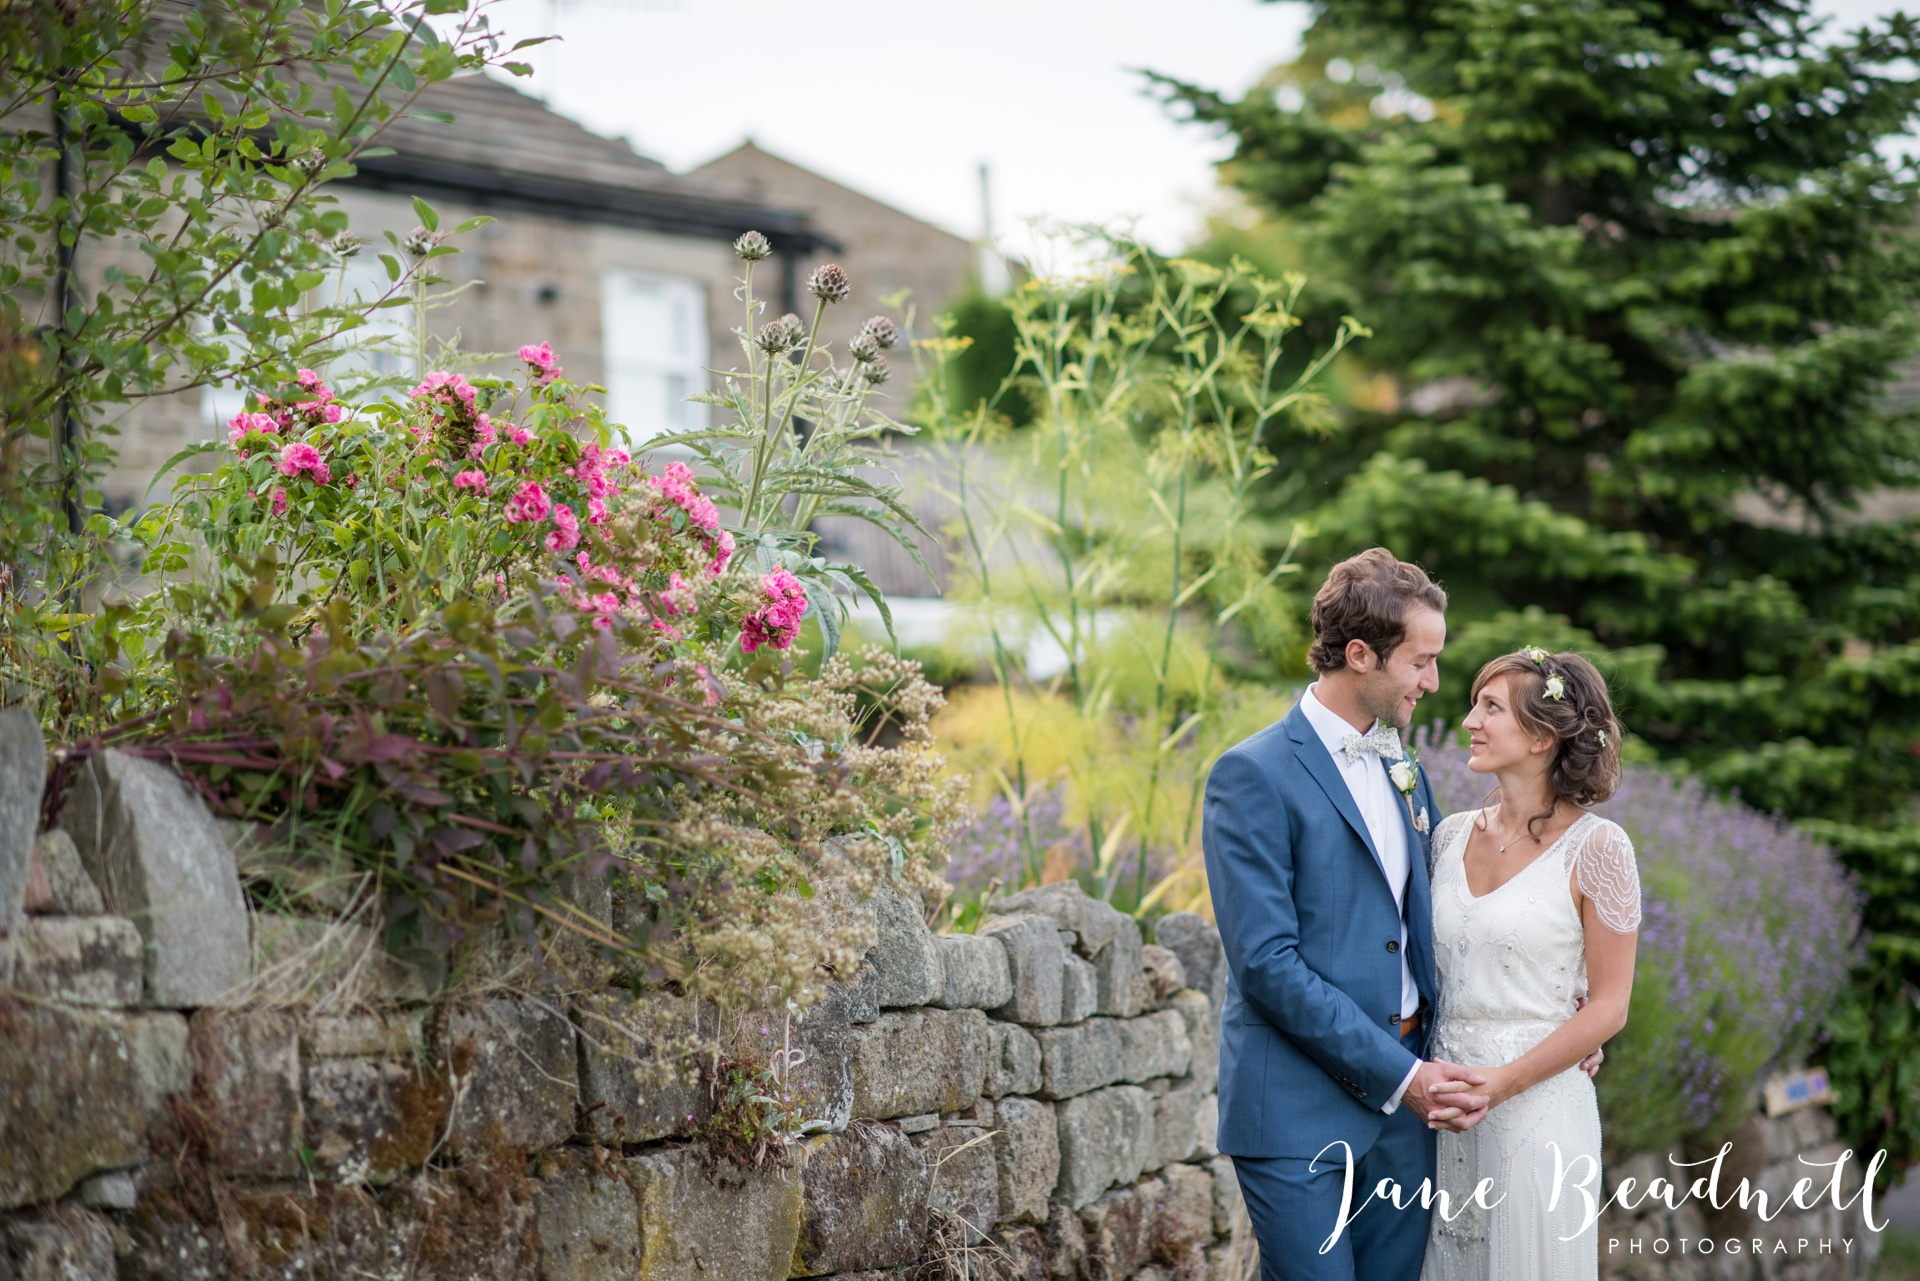 Jane Beadnell fine art wedding photographer Leeds_0137